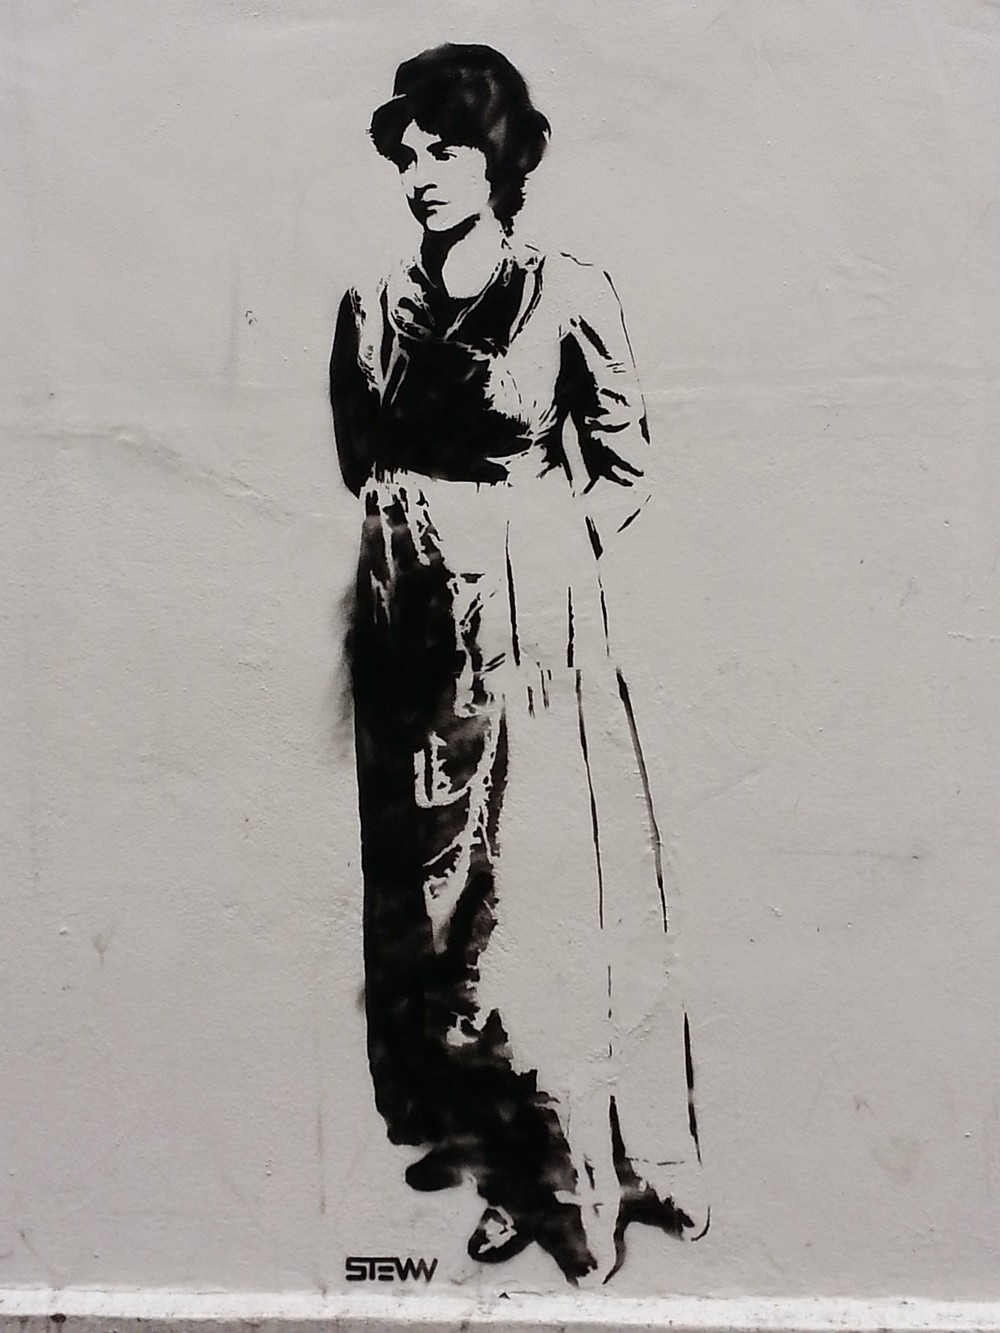 Mary Wollstonecraft street art stencil by STEWY. Located on the outside wall of New Unity @ Newington Green.